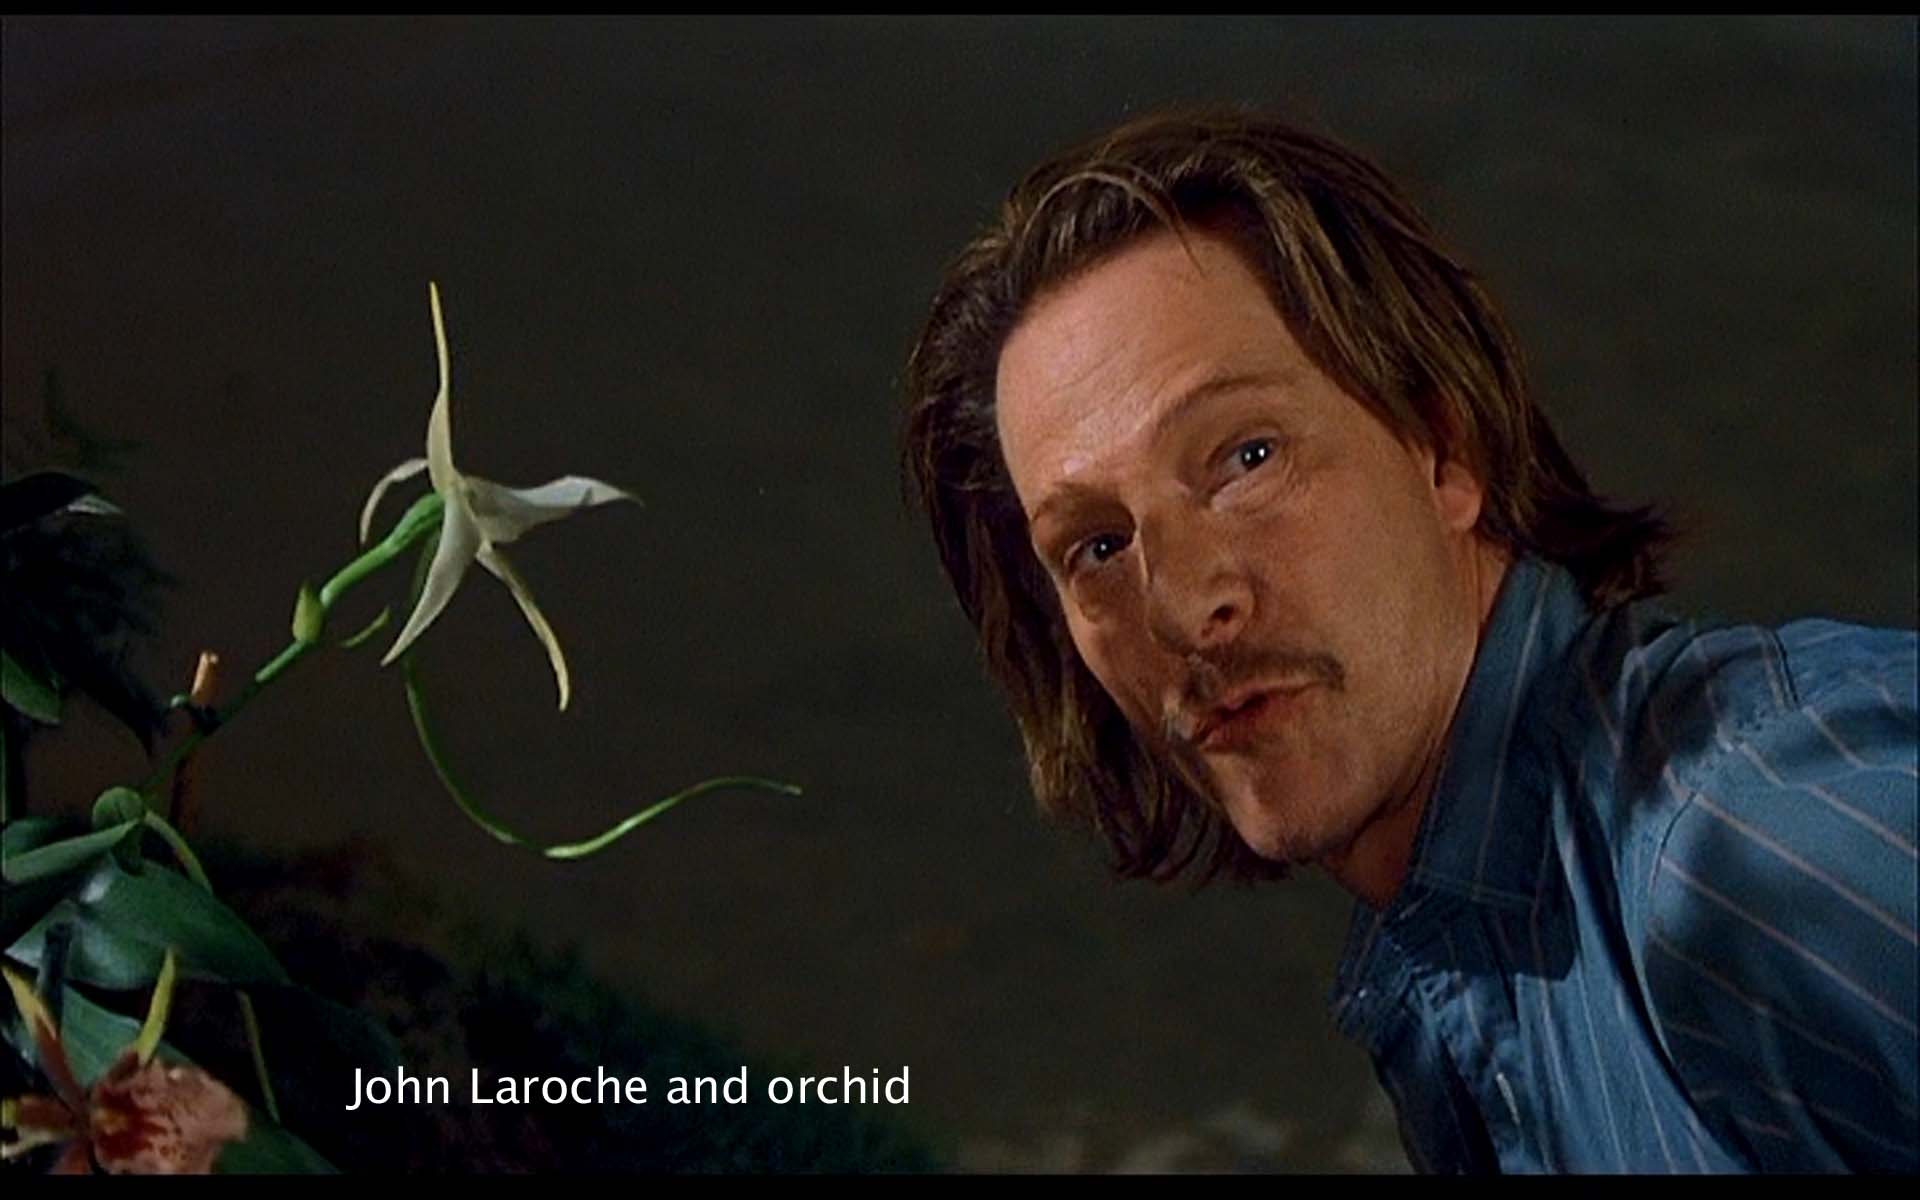 John Laroche and orchid